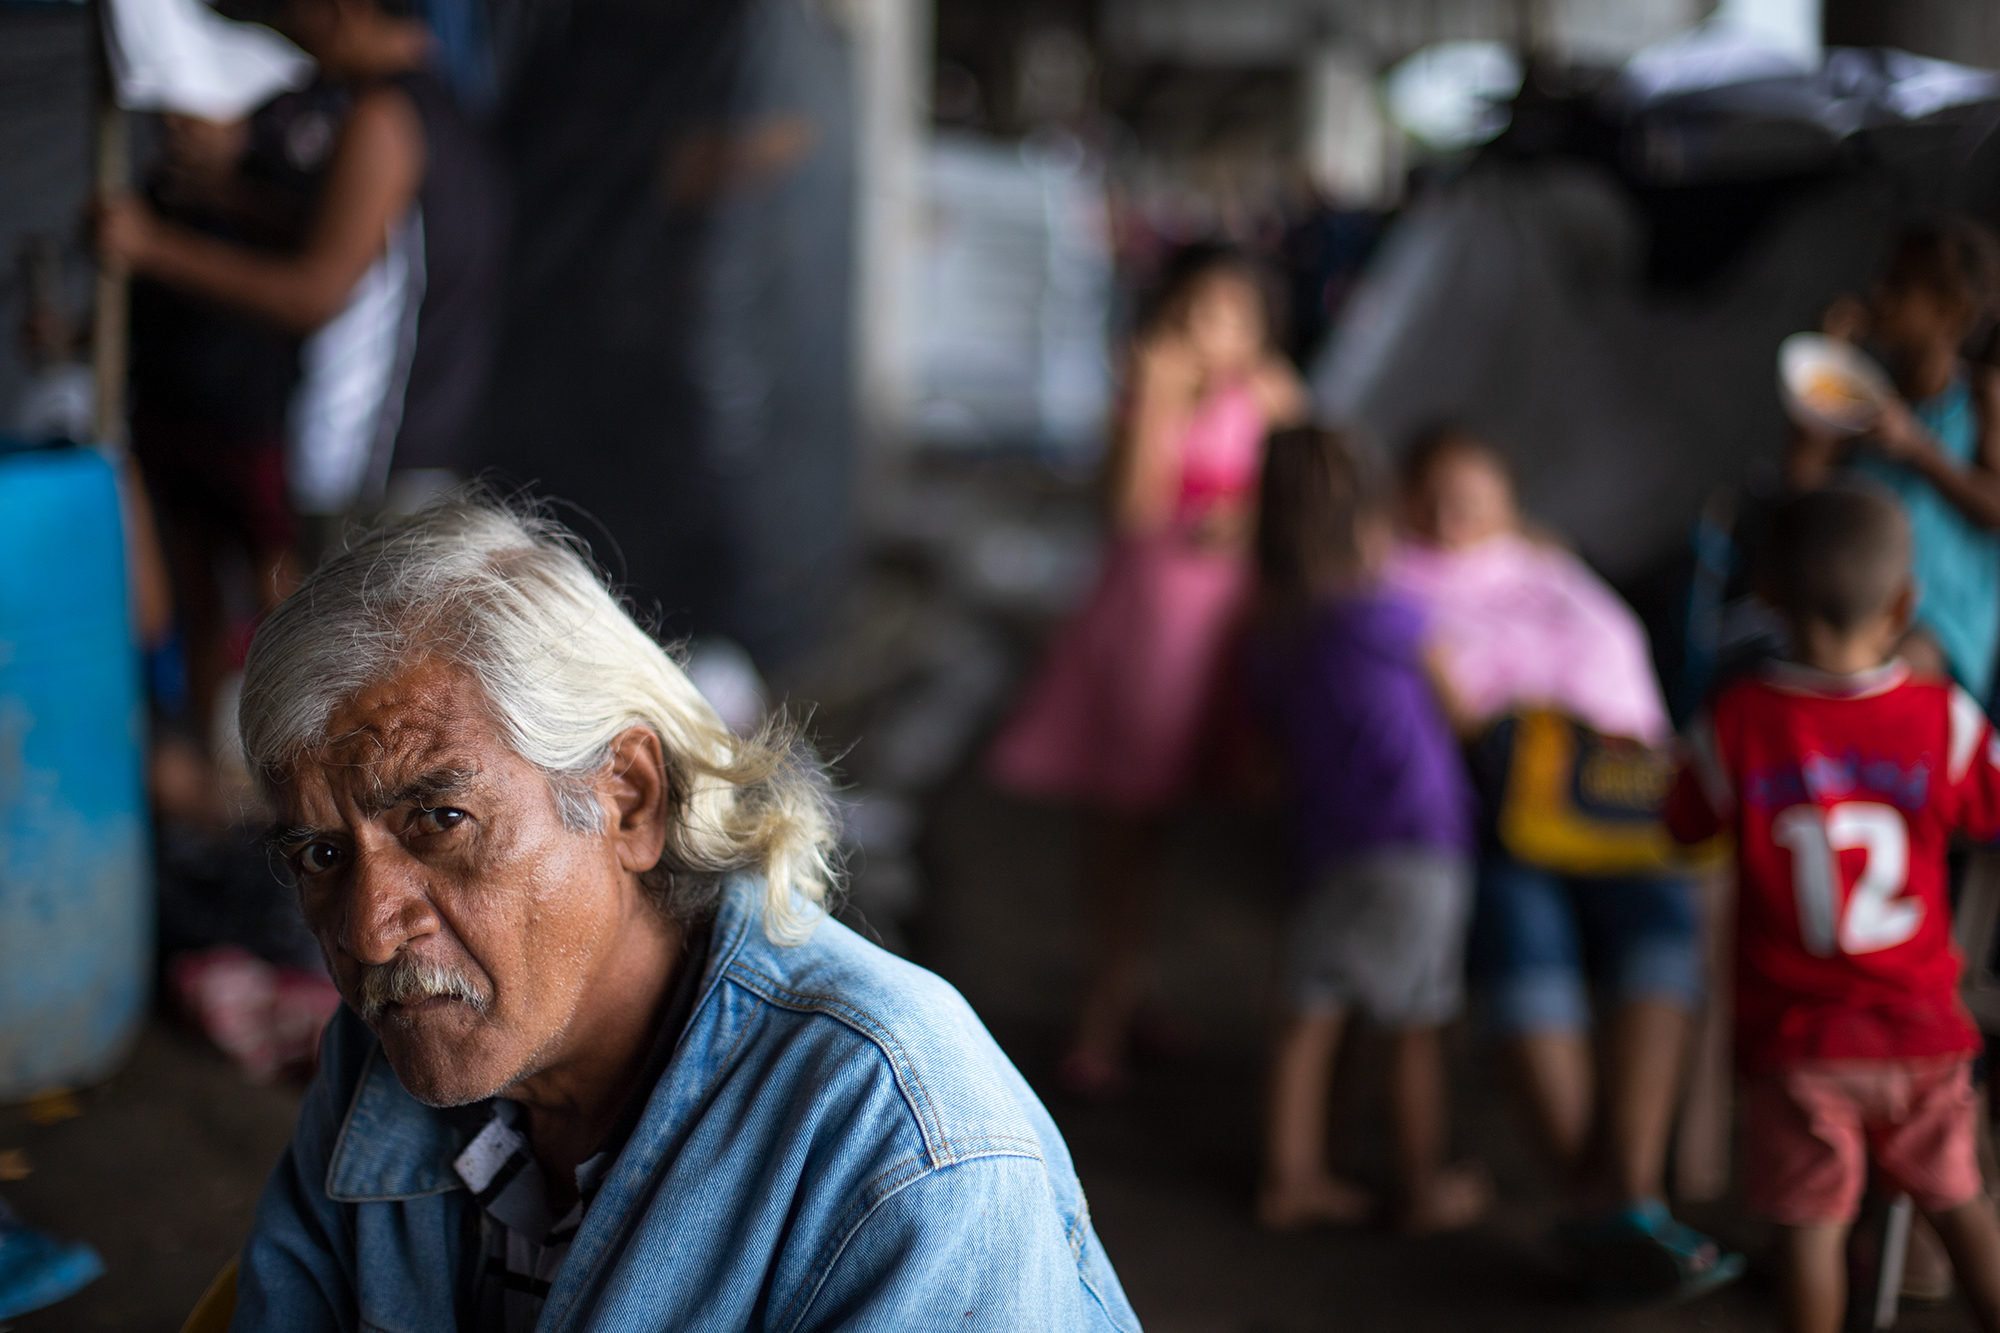 Santos Espana, a 64-year-old affected by the storms, remains under the bridge that runs from the city of San Pedro Sula to western Honduras. Santos explains that on various occasions the military has wanted to move them to available shelters. However, the families under the bridge do not trust any state institutions that want to move them to shelters located in the territory controlled by the opposing gang, whose violence would put them in even more danger. San Pedro Sula, Nov. 21, 2020. Photo: Martín Cálix.